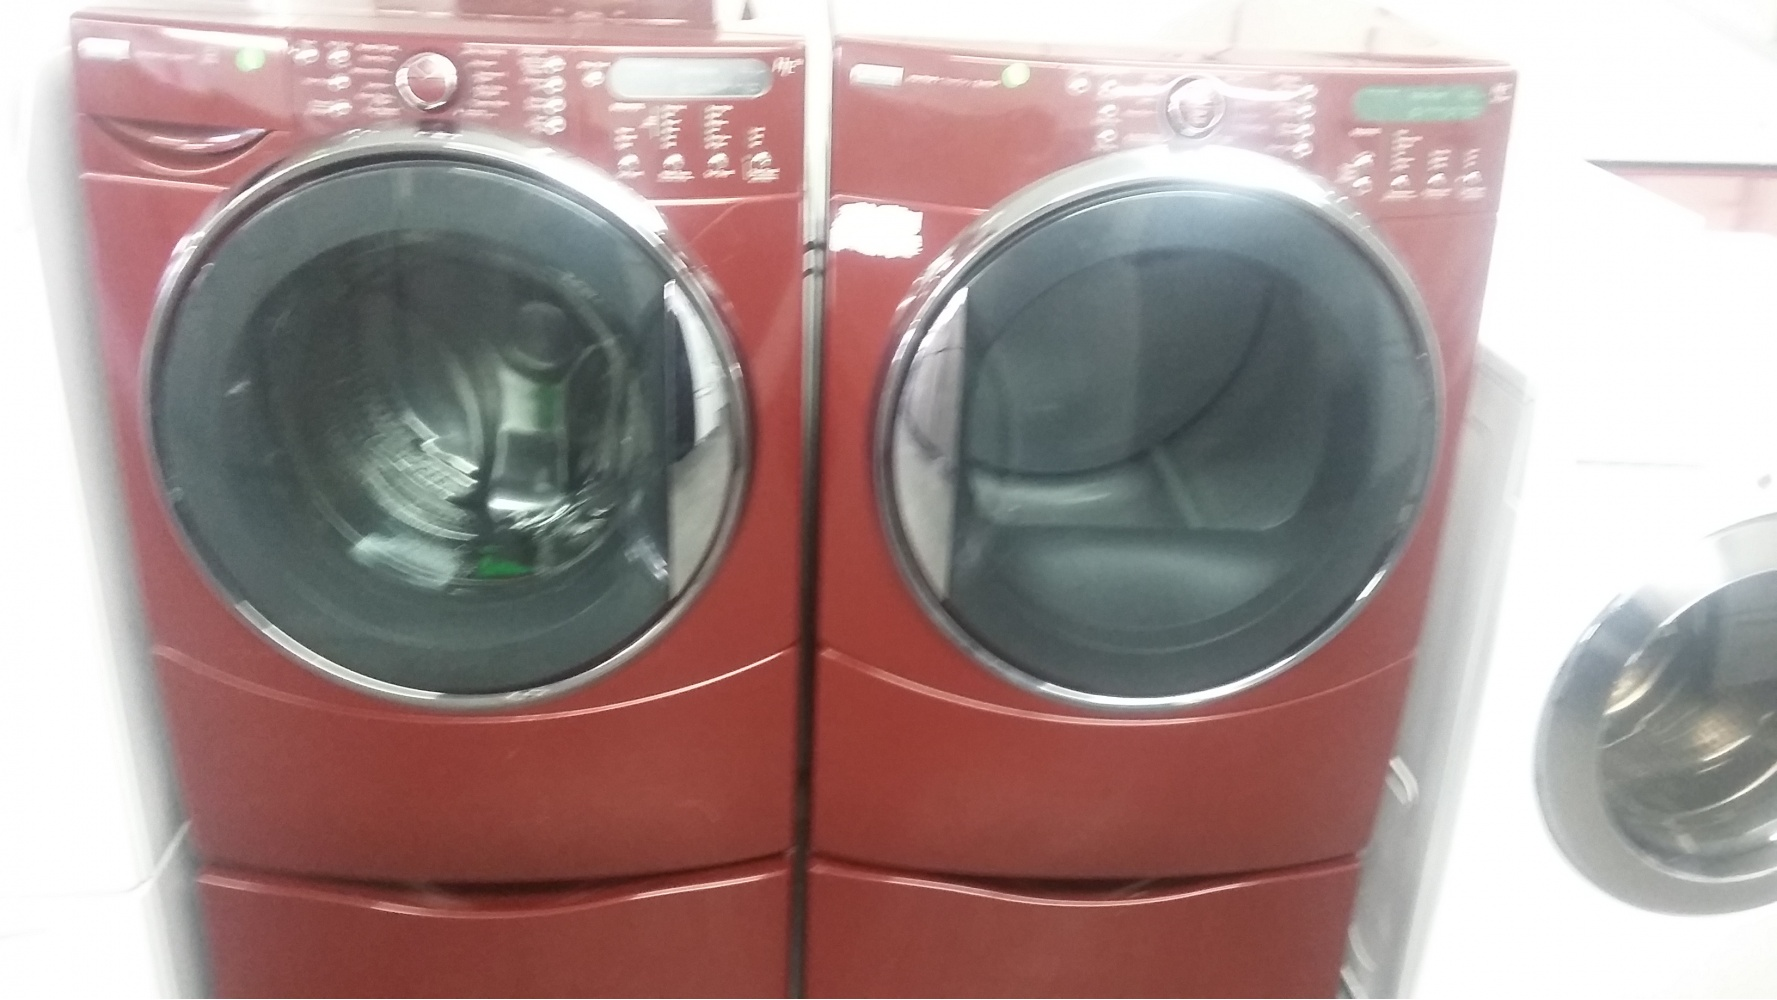 Standard Washer And Dryer Depth Kenmore He5 Burgundy Front Load Washer W/ Gas Dryer Set On